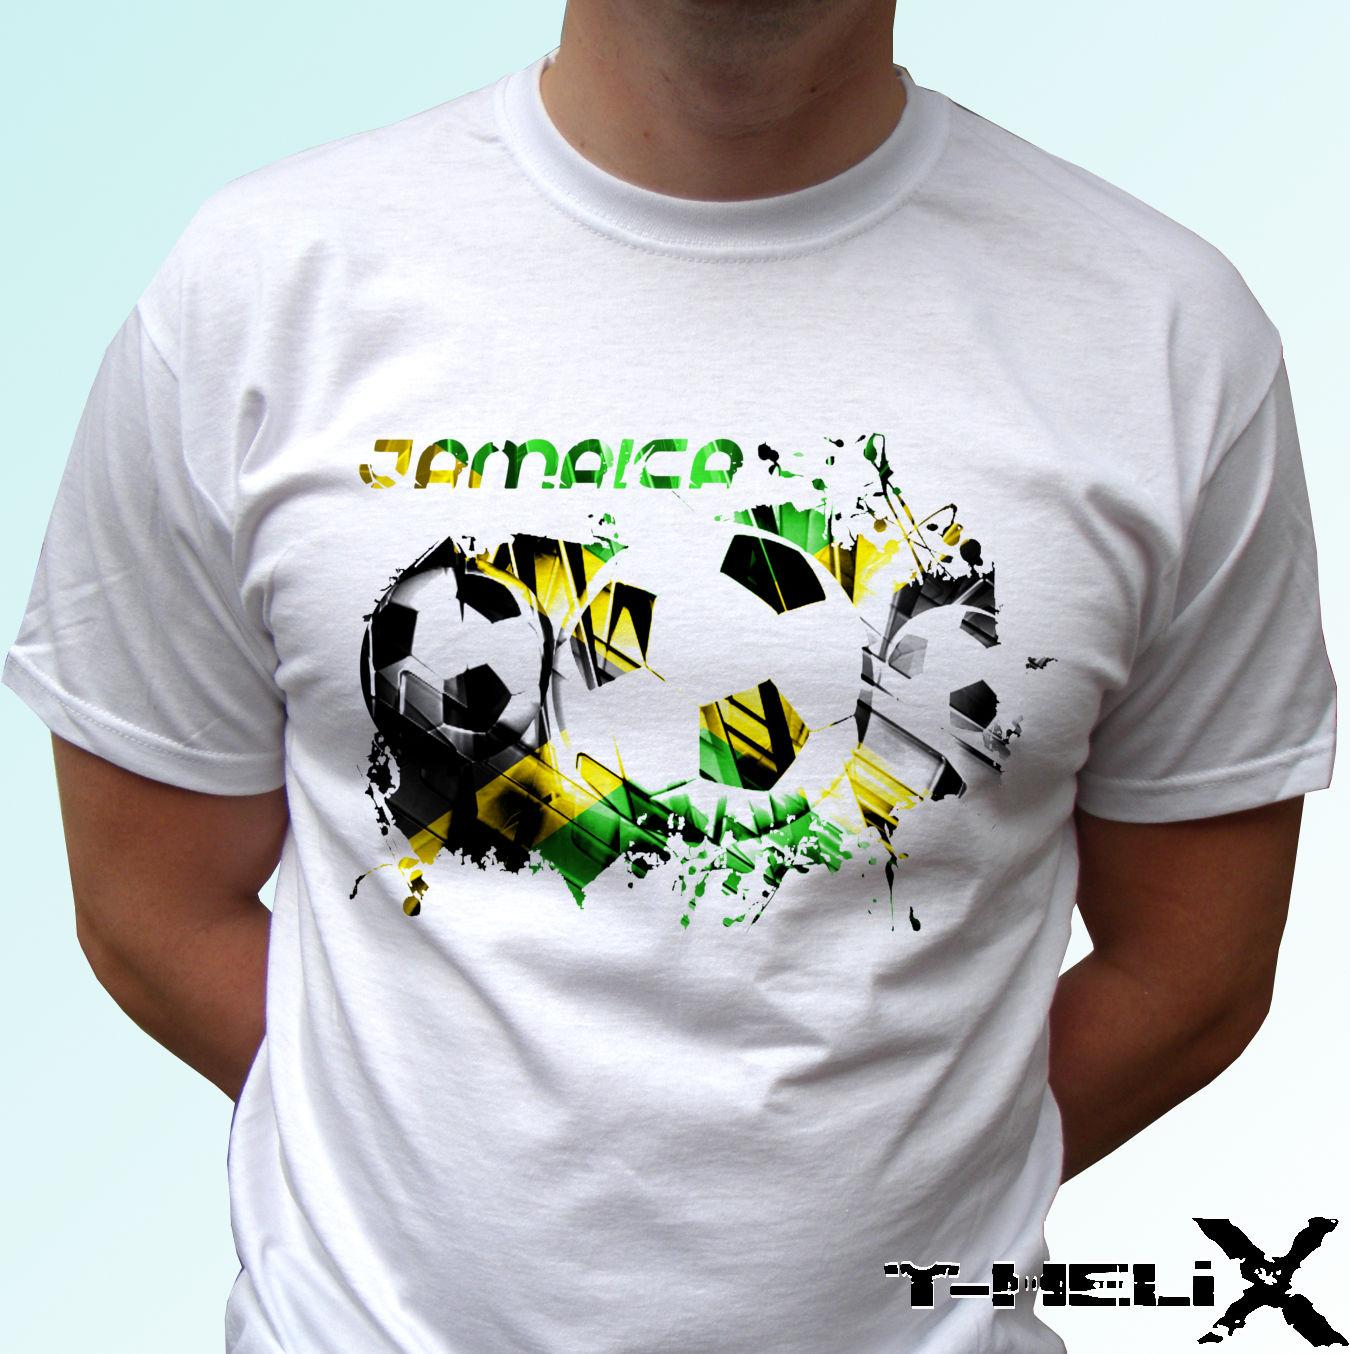 381132c06 Jamaica Football Flag White T Shirt Top Soccer Tee Mens Womens Kids Baby  Ool Casual Pride T Shirt Men Unisex Shirts With Designs R Shirt From  Designtshirts